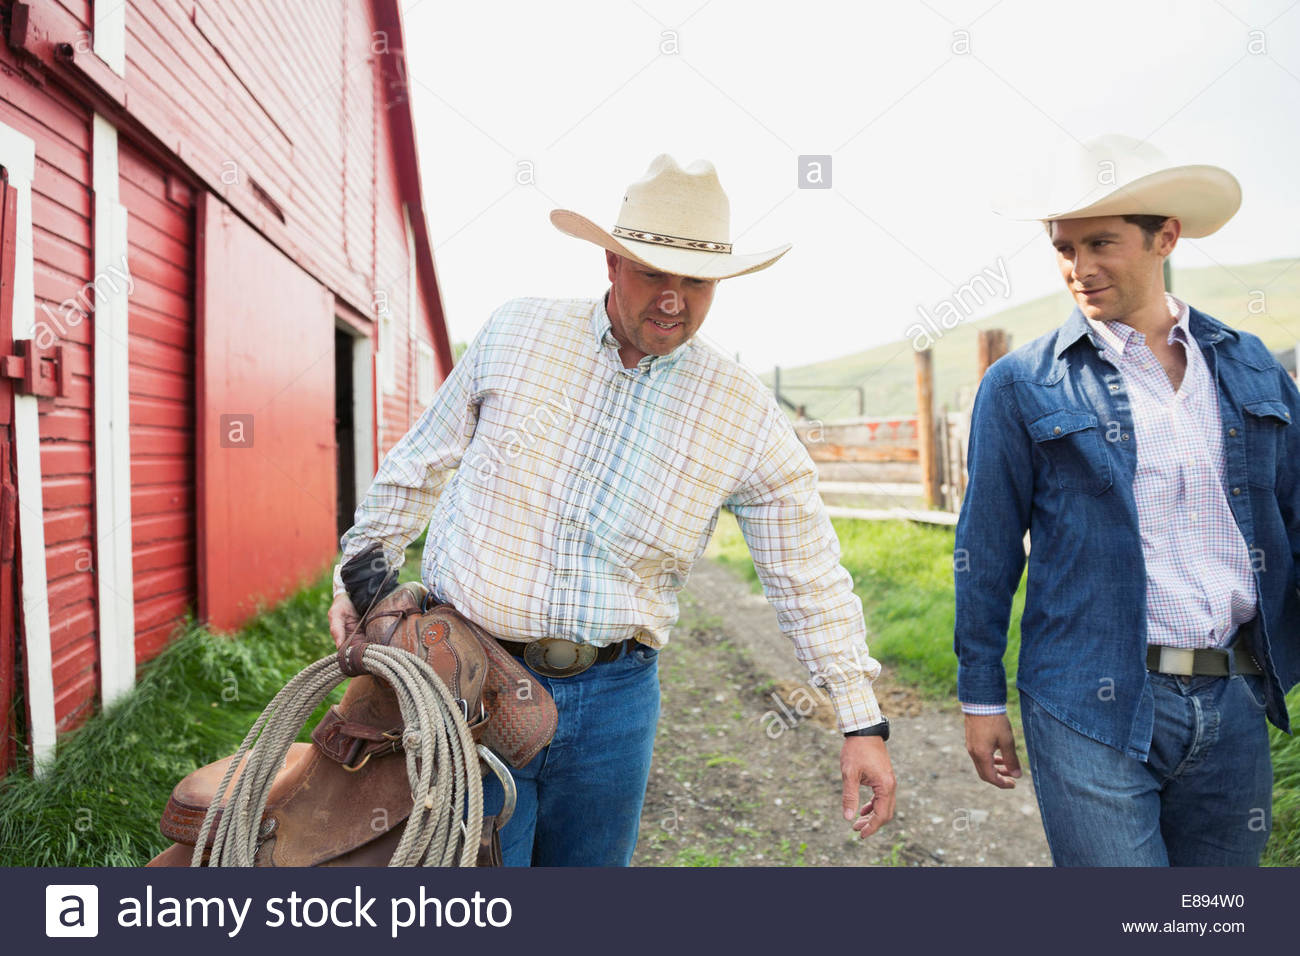 Ranchers carrying saddle and tack outside barn - Stock Image